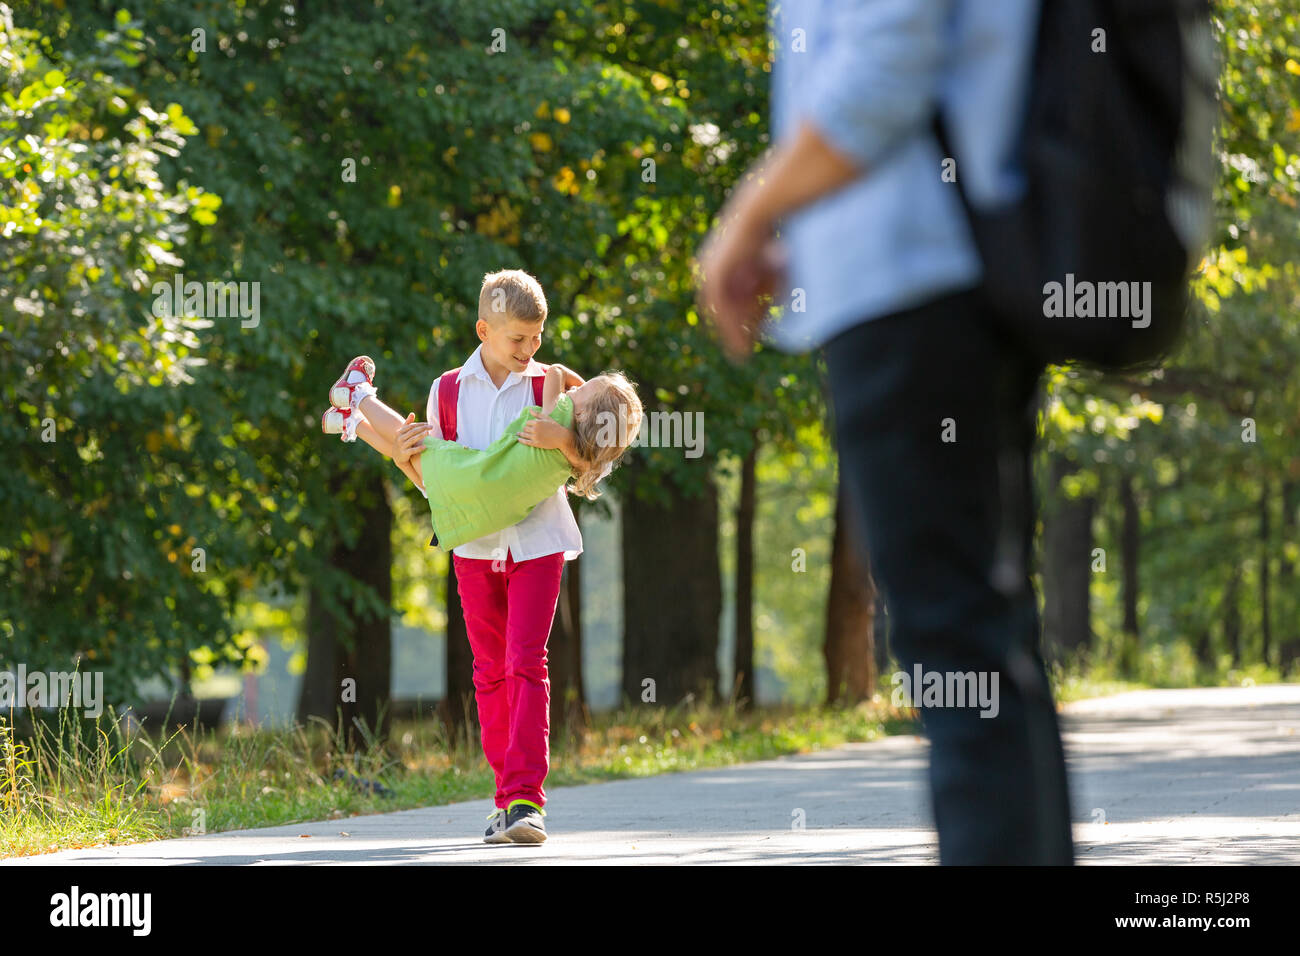 Happy laughing children playing and having fun in the park. Outdoors portrait on a sunny summer day. Older brother walking with younger sister in the park Stock Photo